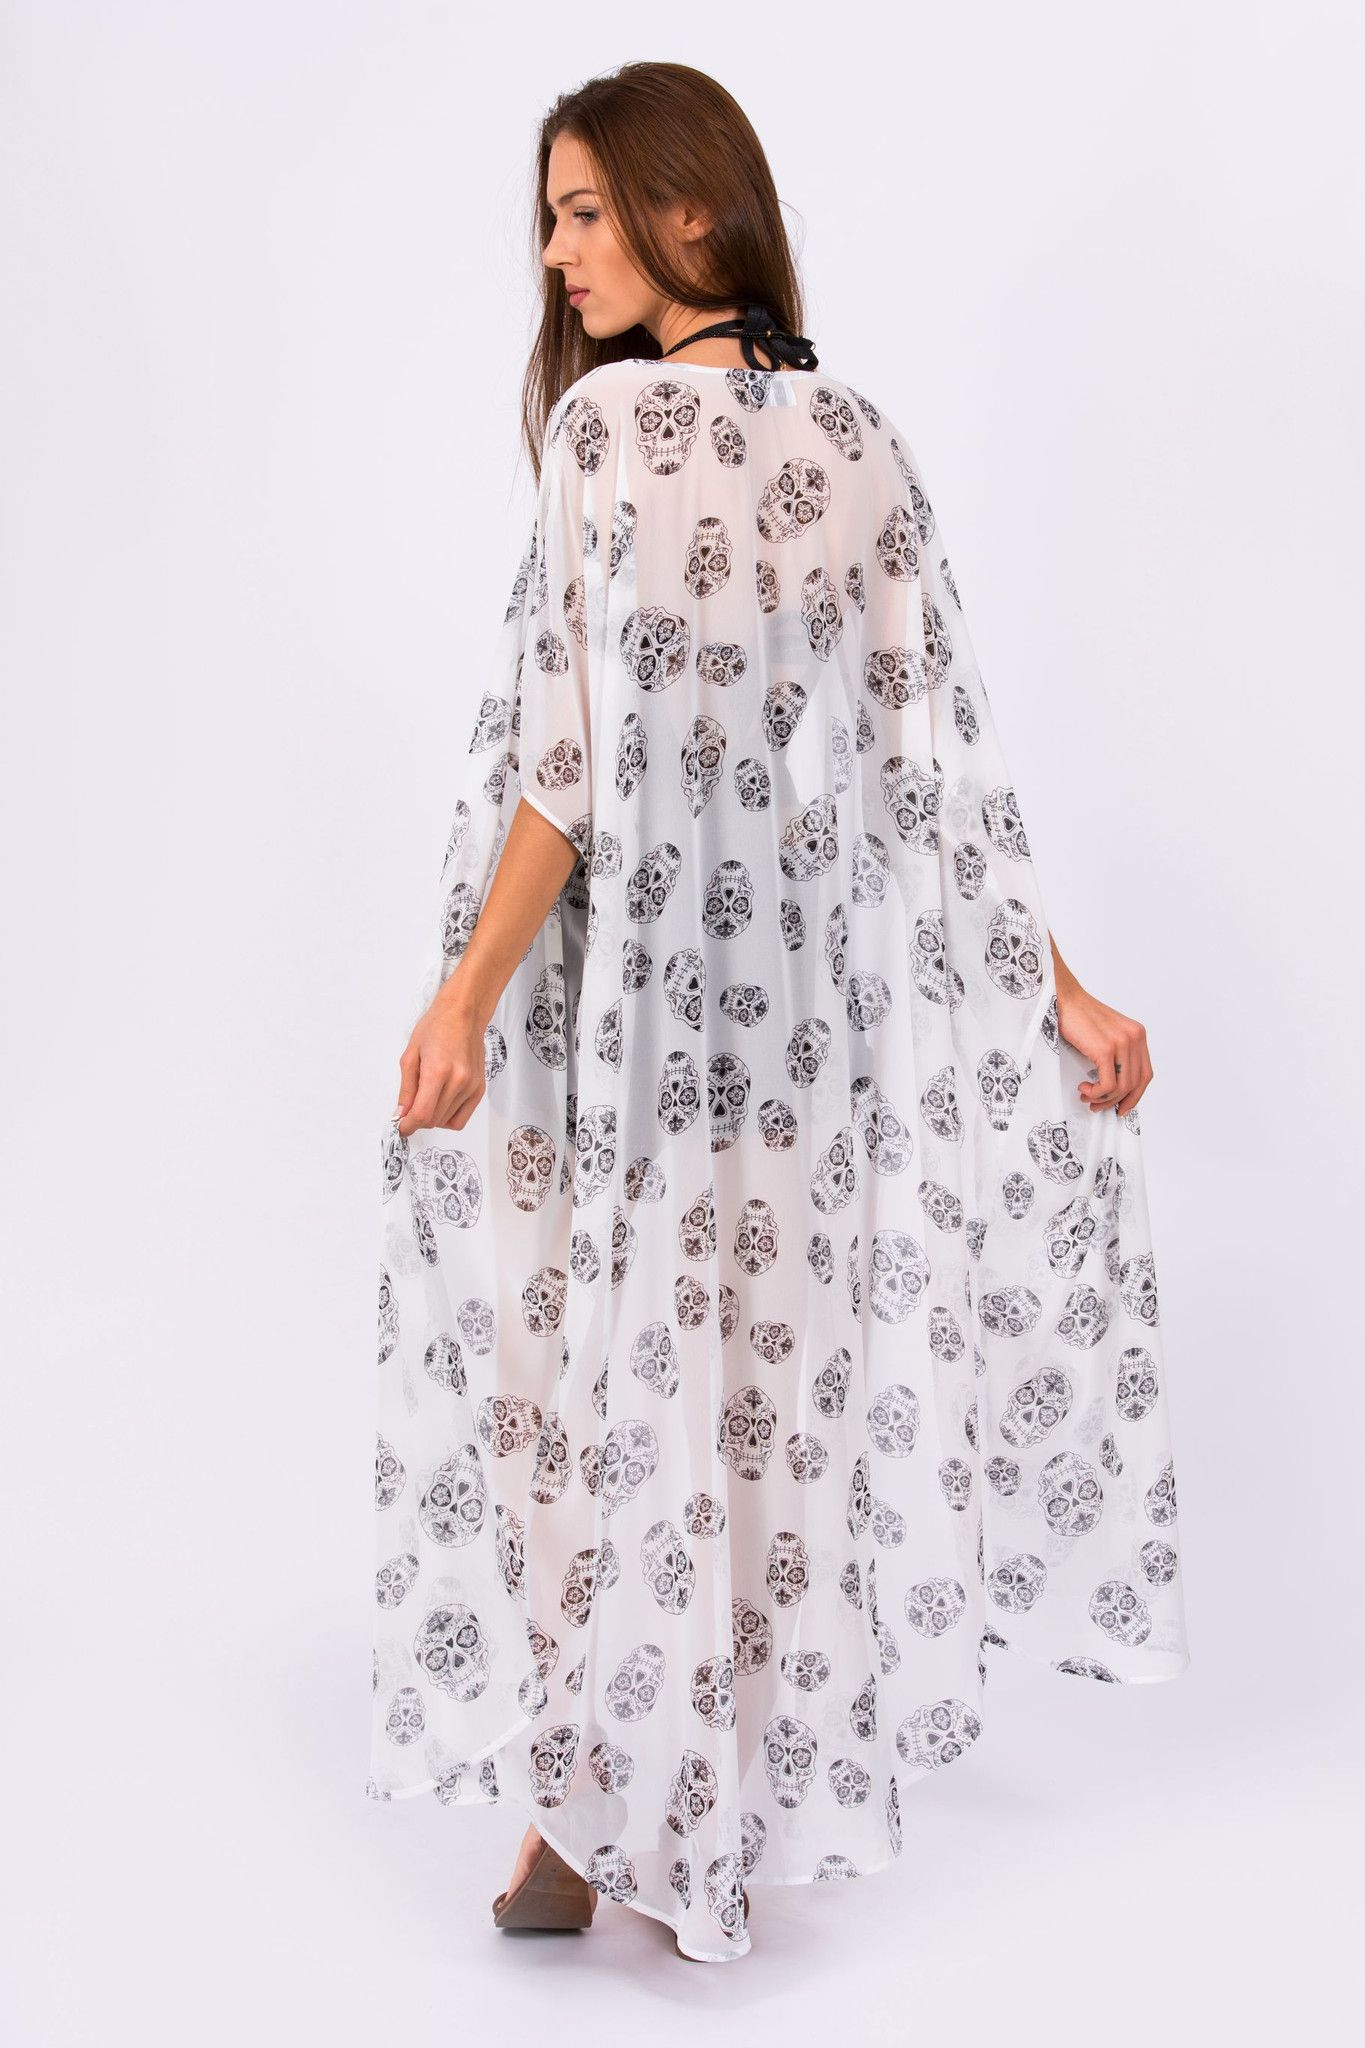 c2a1a24269364 White & Black Chiffon Kimono with Skull Print- Available in Short, Mid and  Full Length